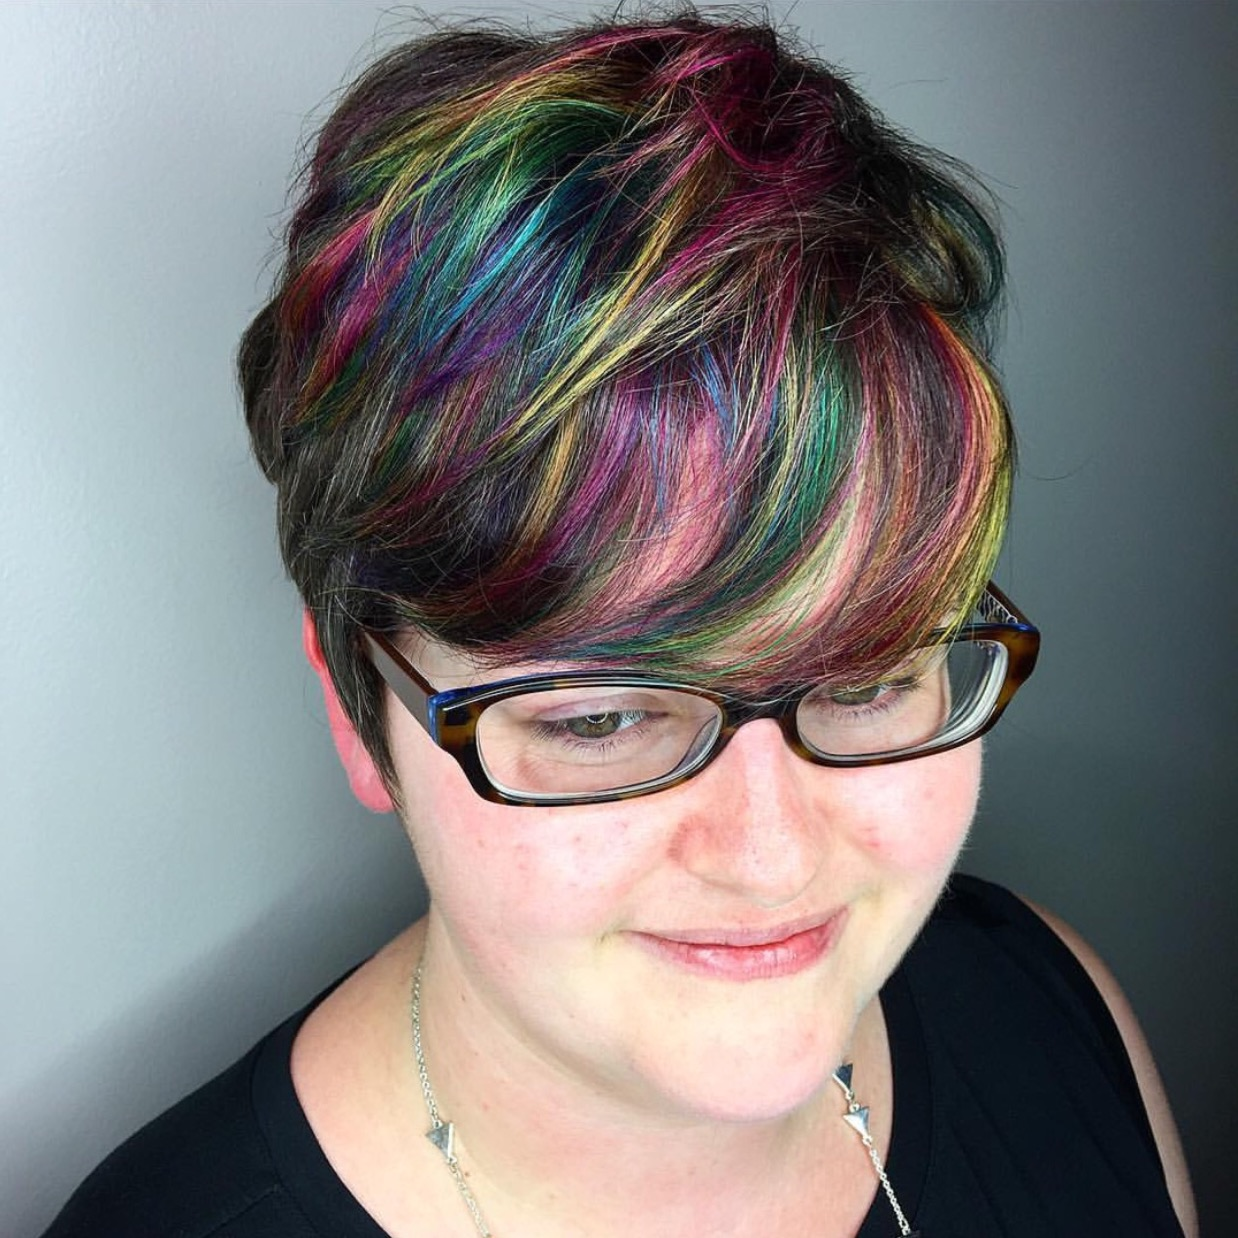 rainbow hair avatar.JPG